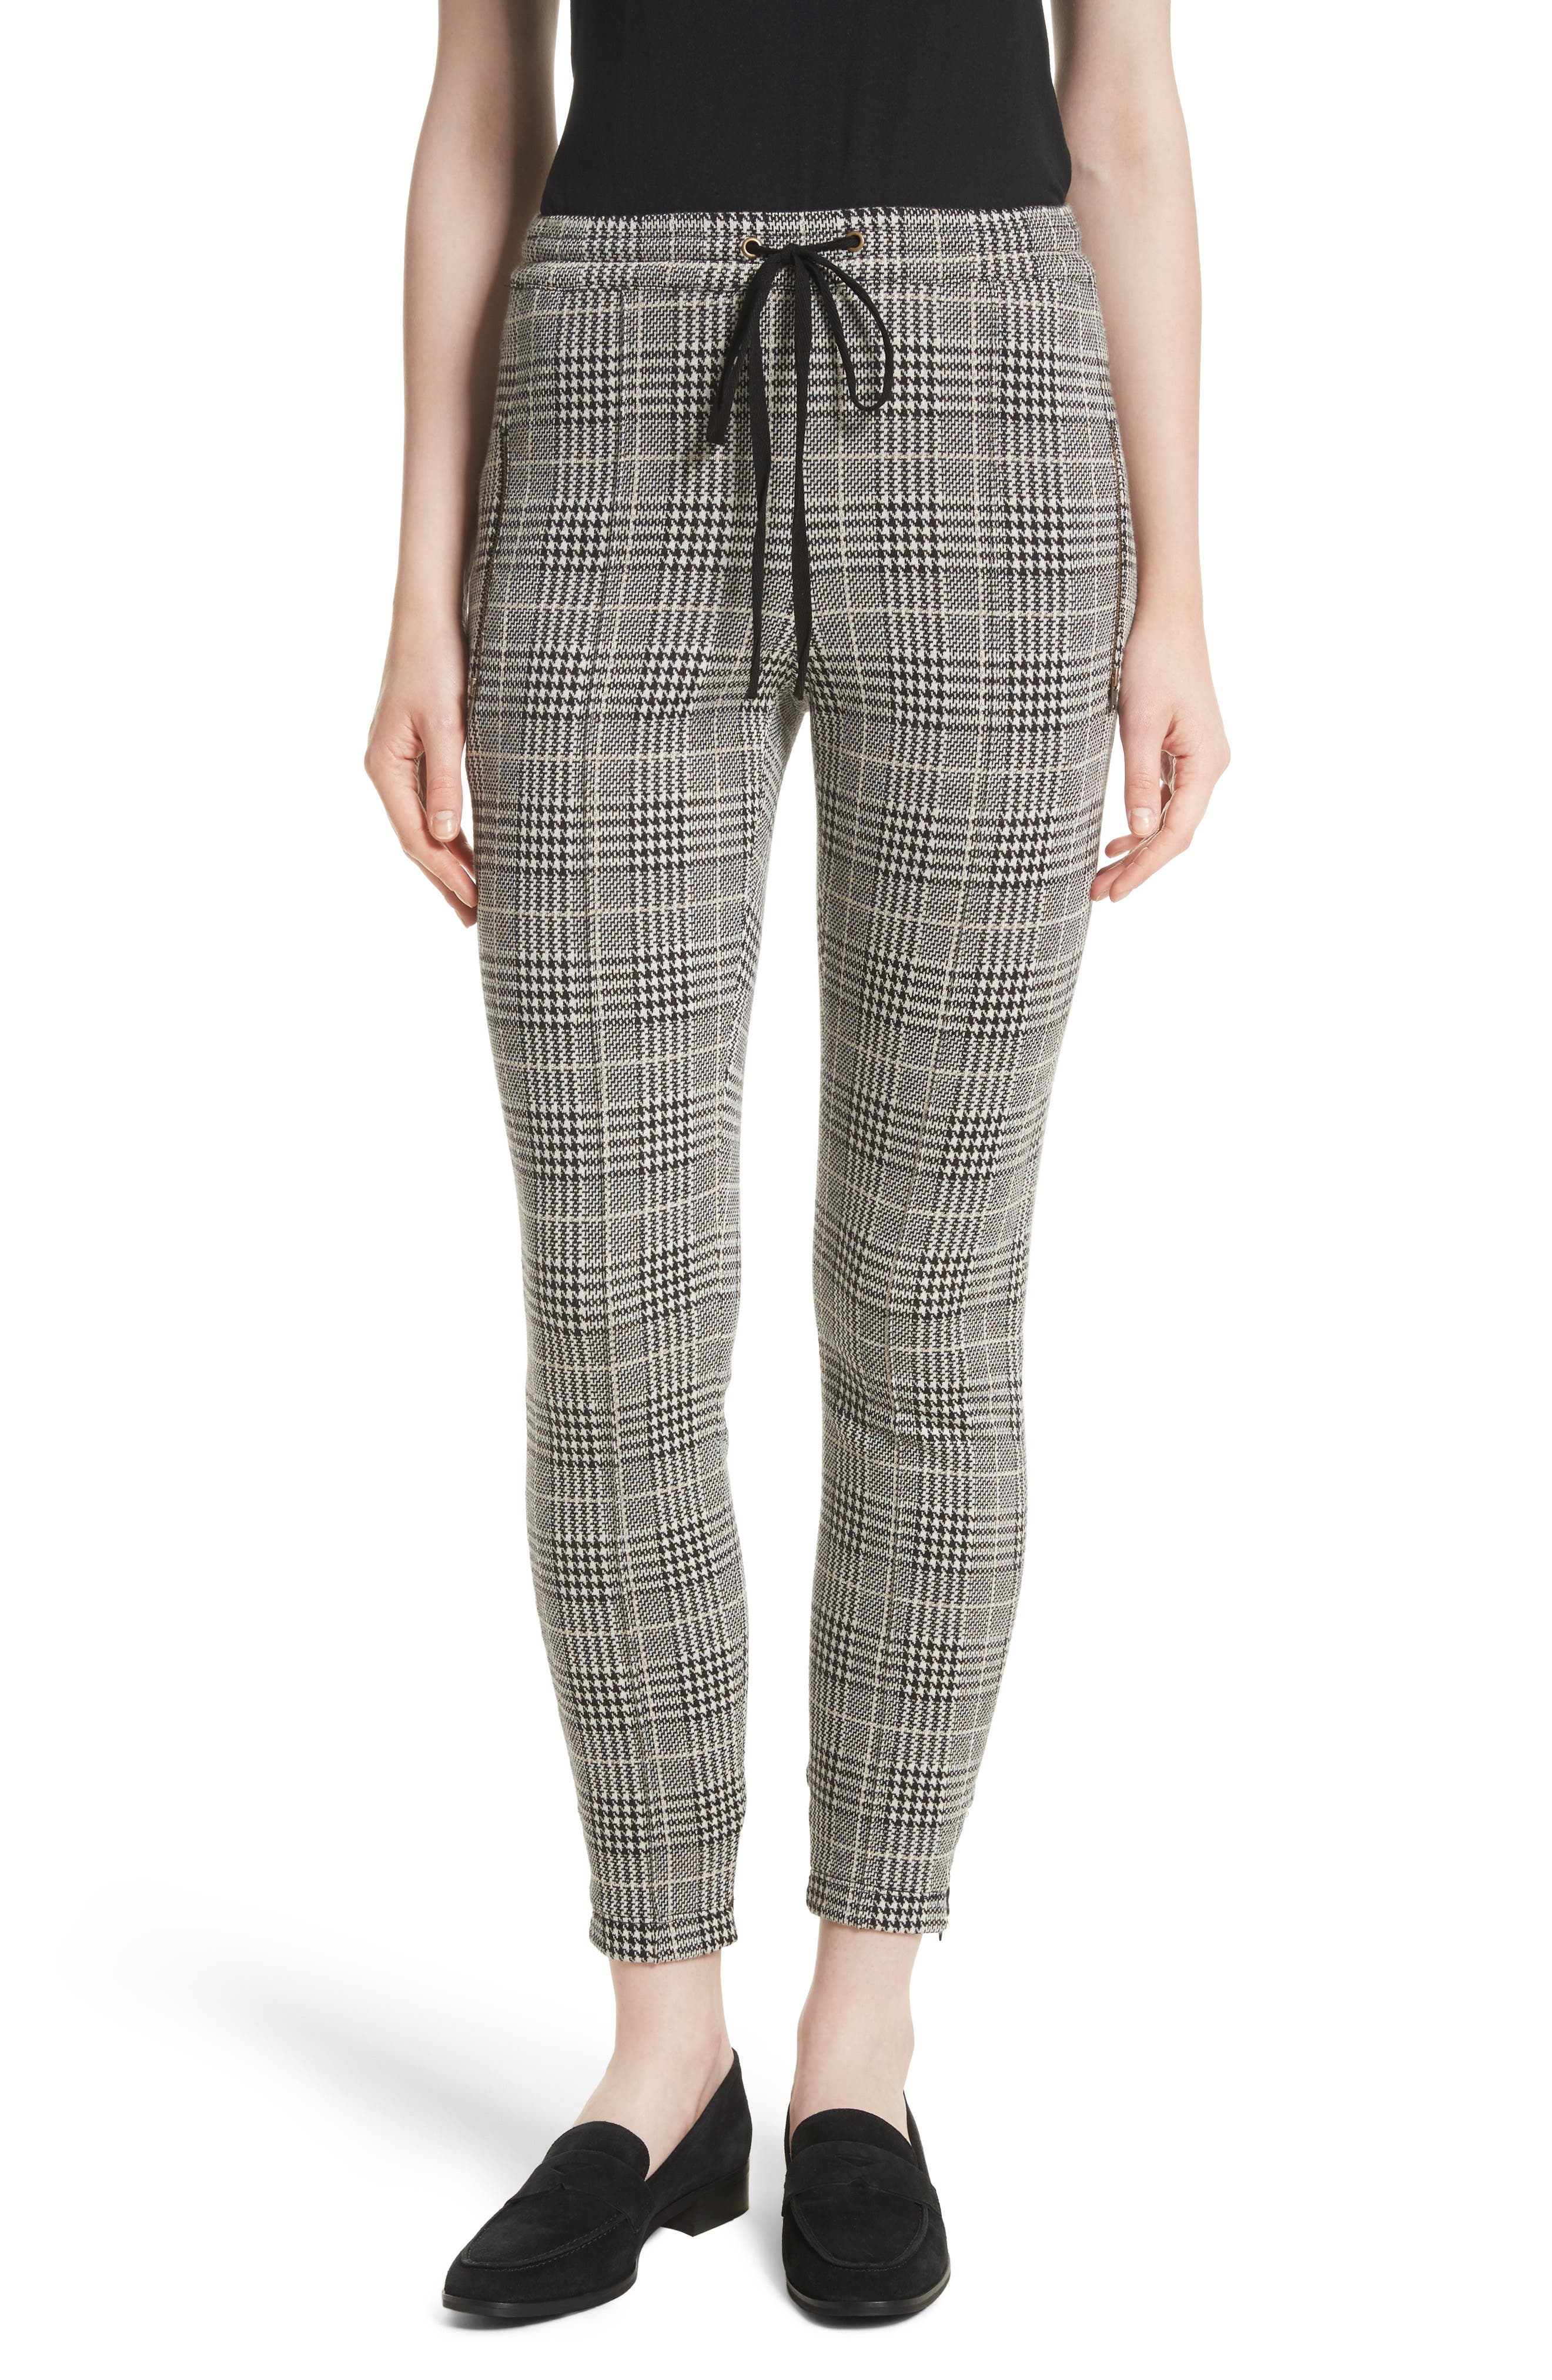 Houndstooth Ankle Skinny Pants,                             Main thumbnail 1, color,                             Black/ Ecru/ Antique Gold